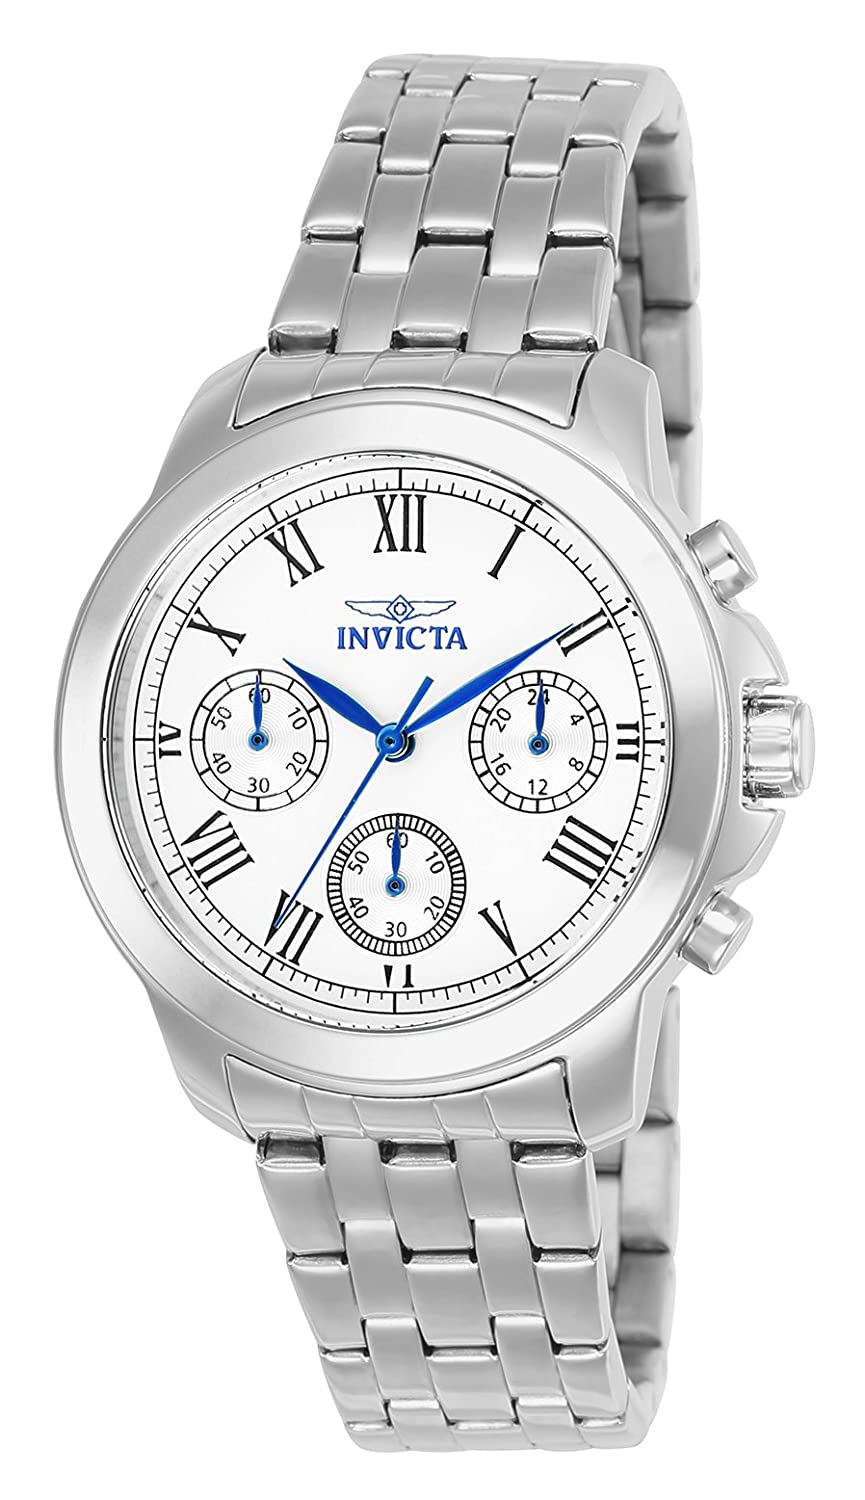 Invicta Women s 21653 Specialty Analog Display Swiss Quartz Silver-Tone Watch